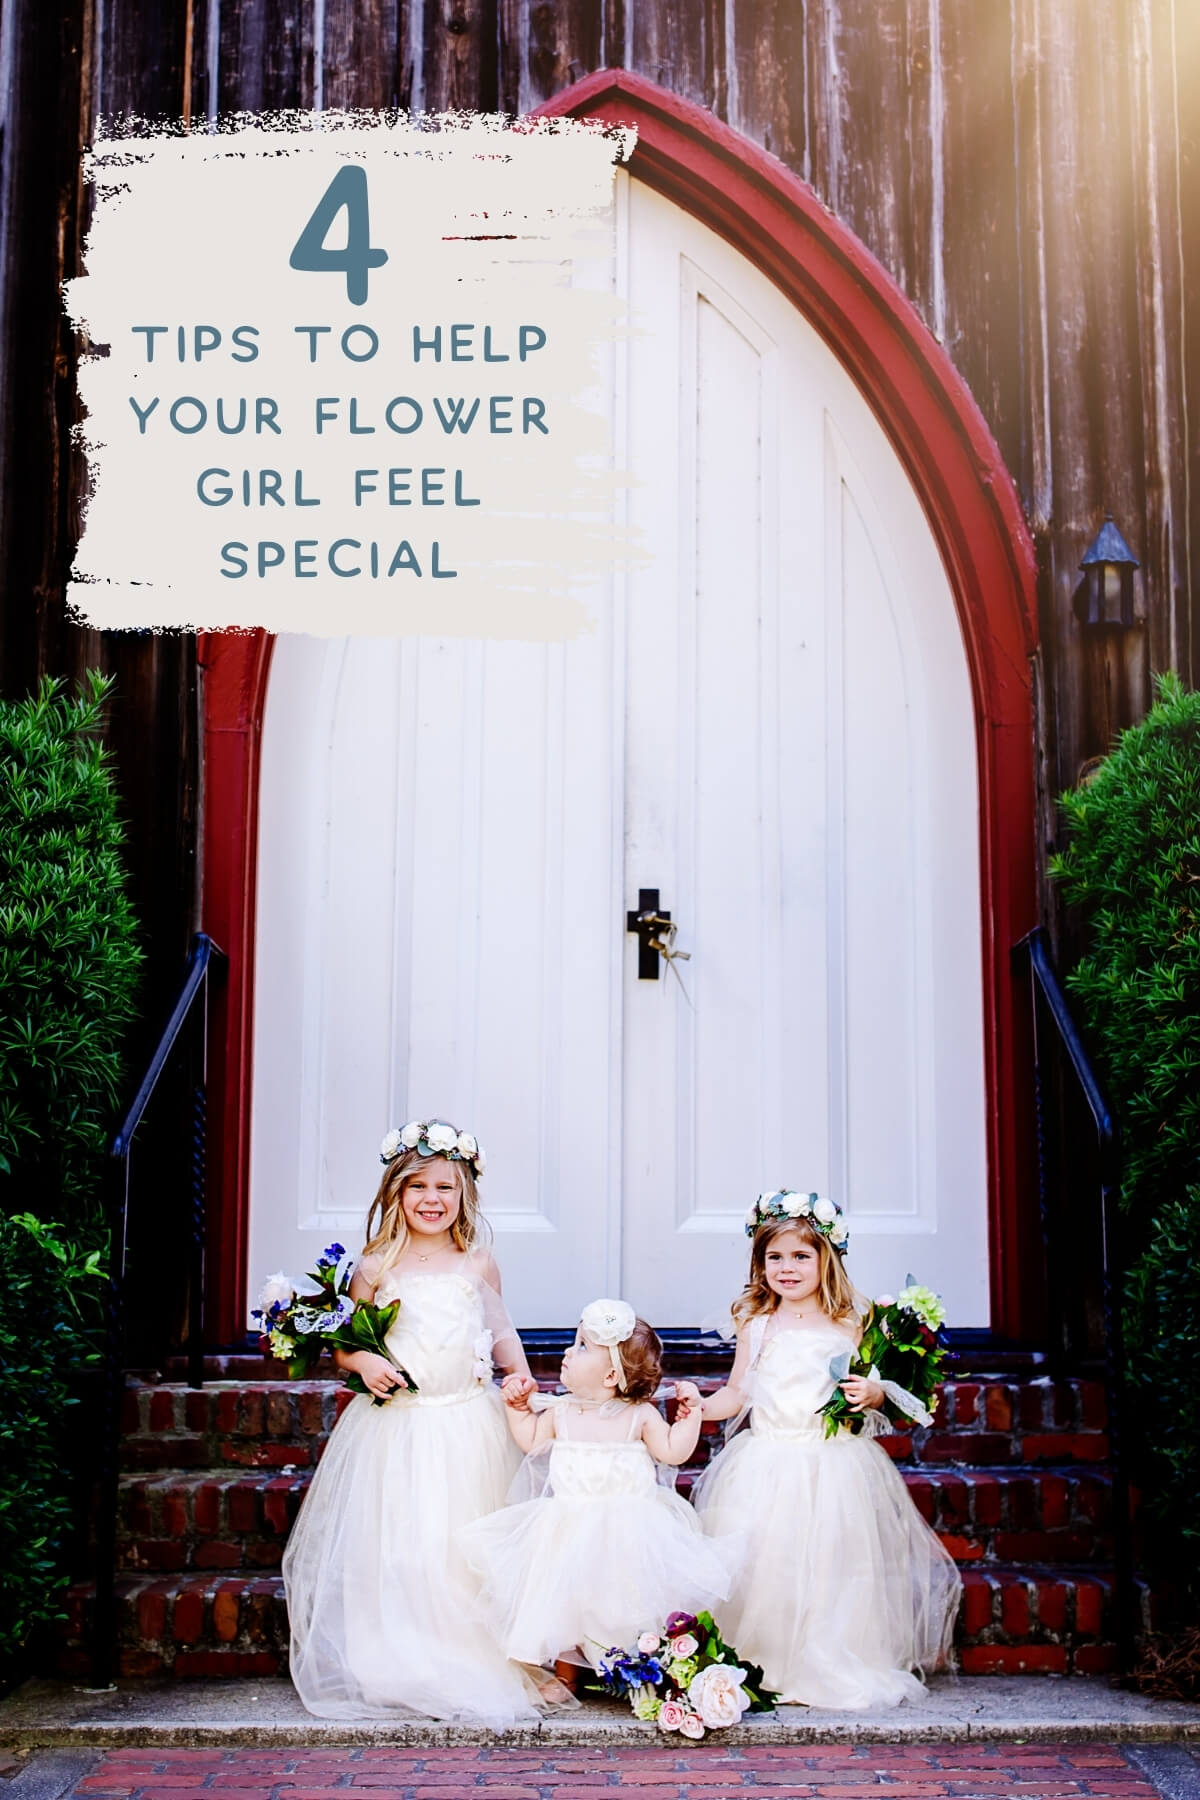 4 tips to help your flower girl feel special.